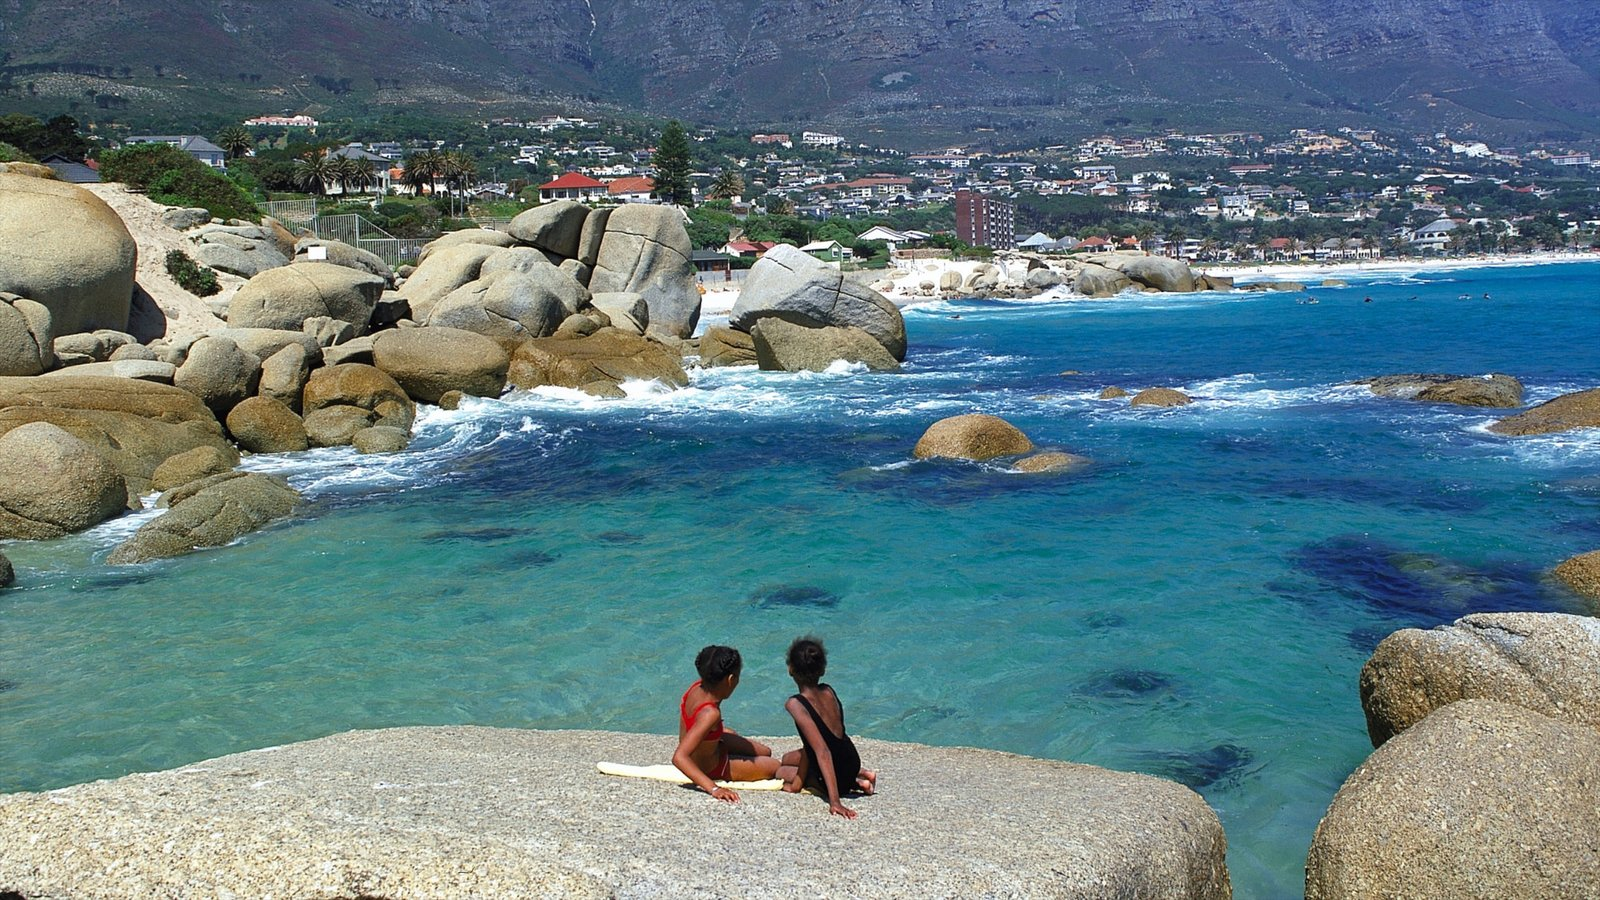 Camps Bay which includes landscape views, rugged coastline and a bay or harbor